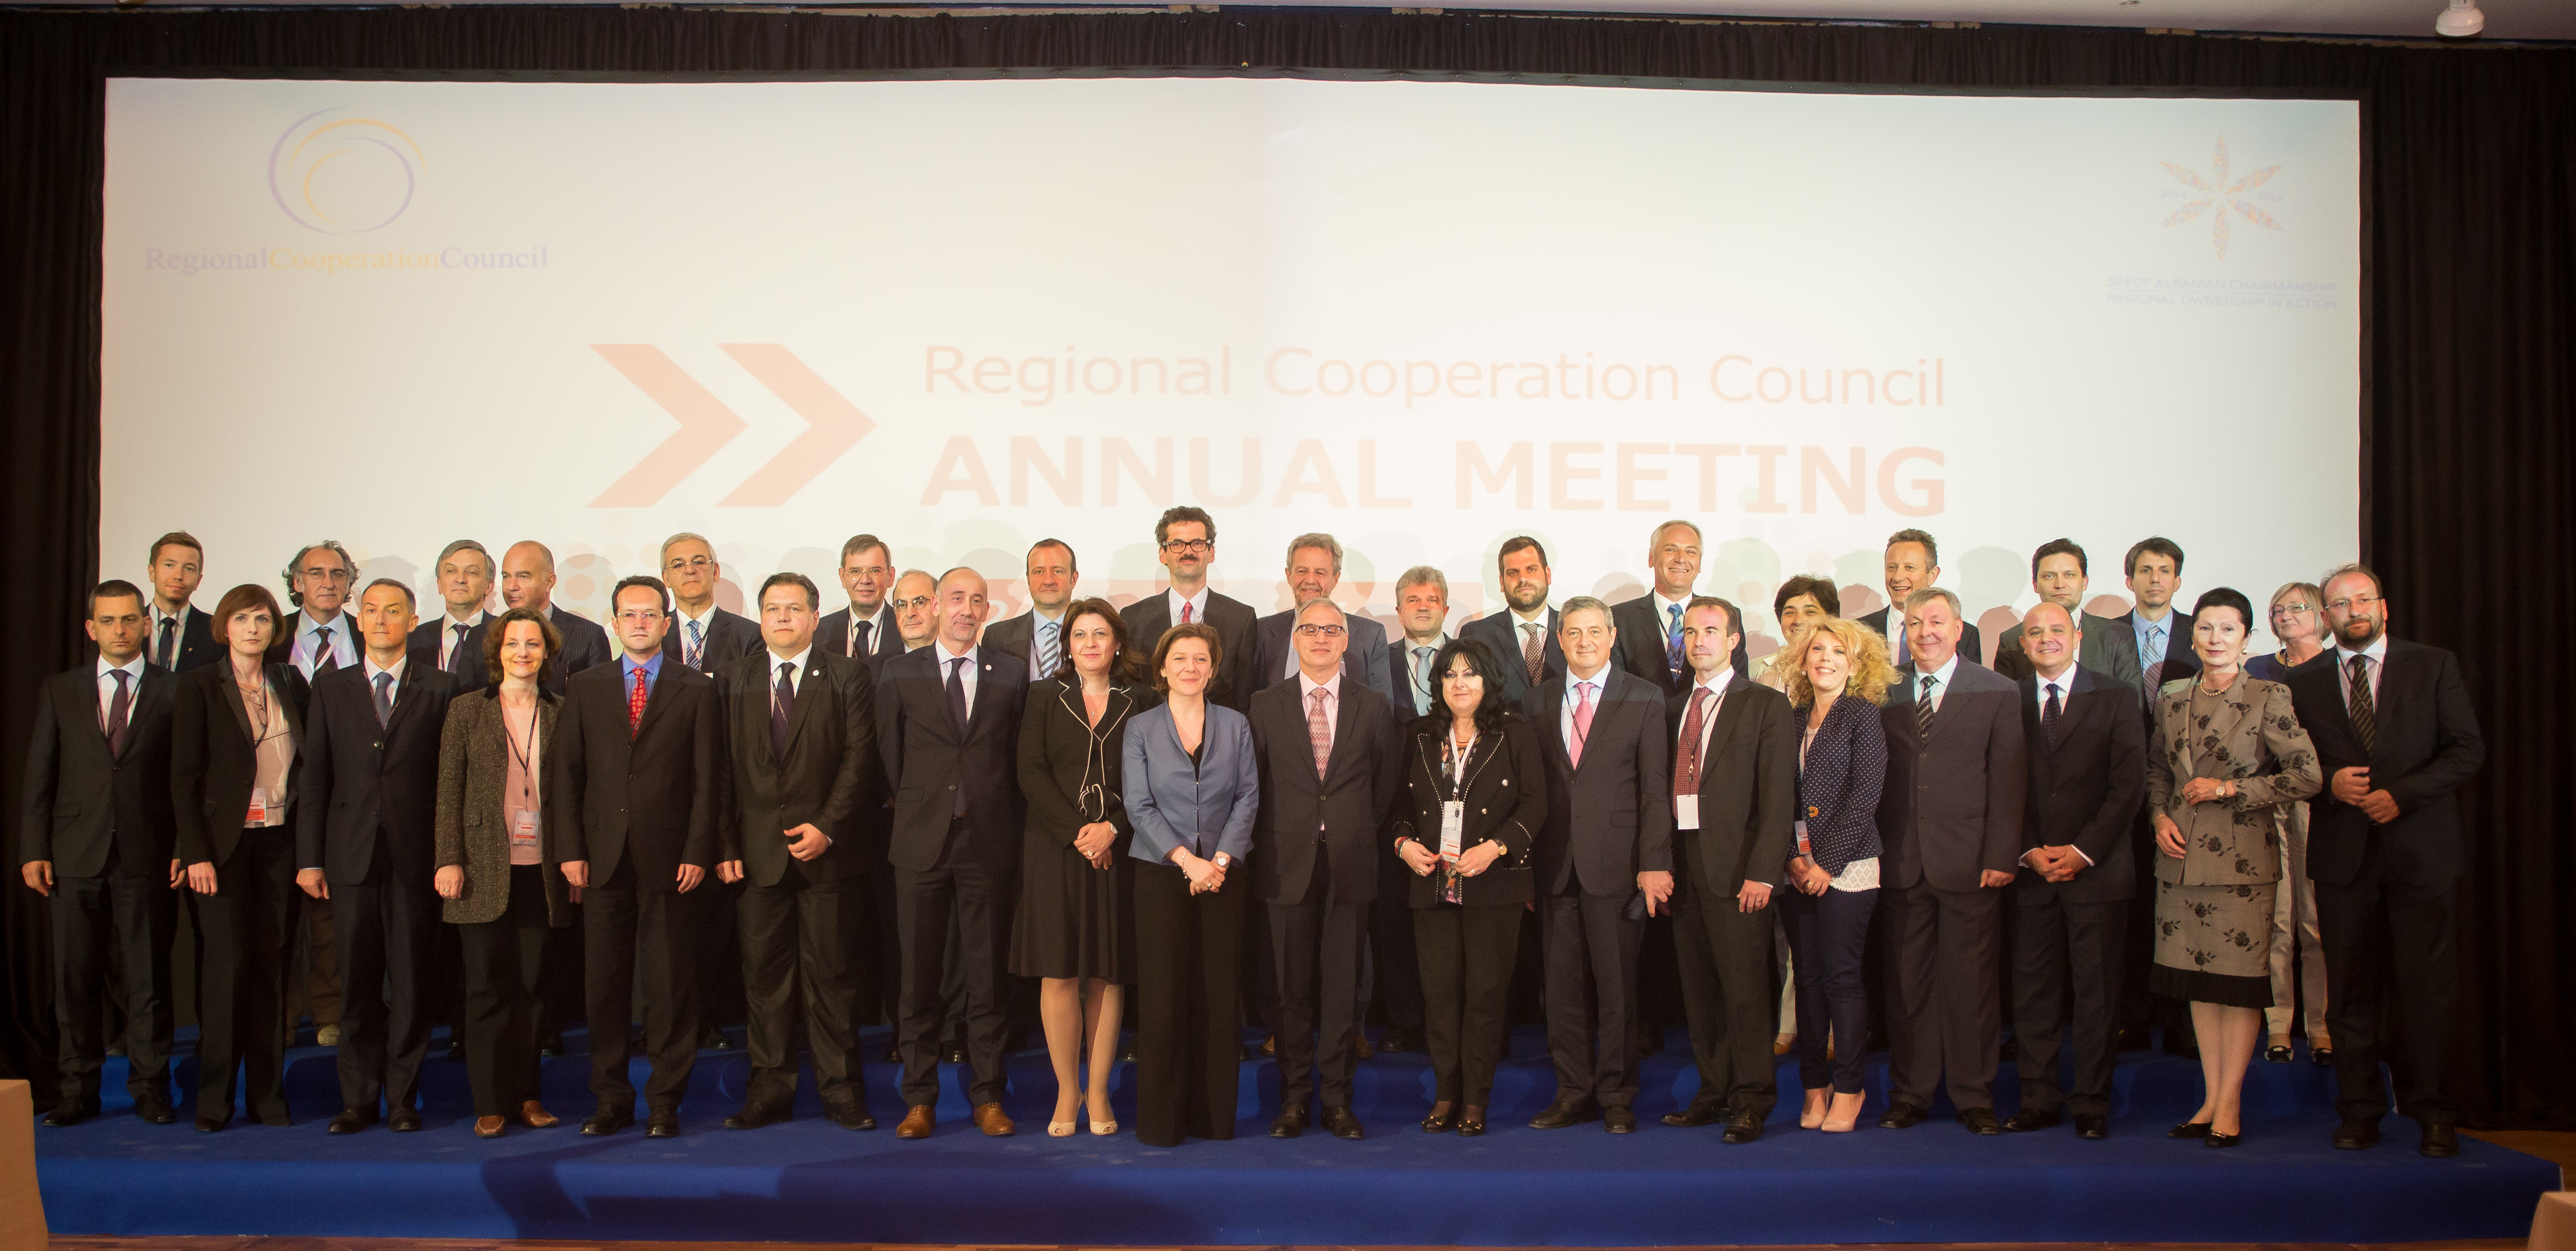 Participants of the RCC Annual Meeting, in Tirana on 22 May 2015. (Photo: Ministry of Foreign Affairs of Albania/Eriona Cami)